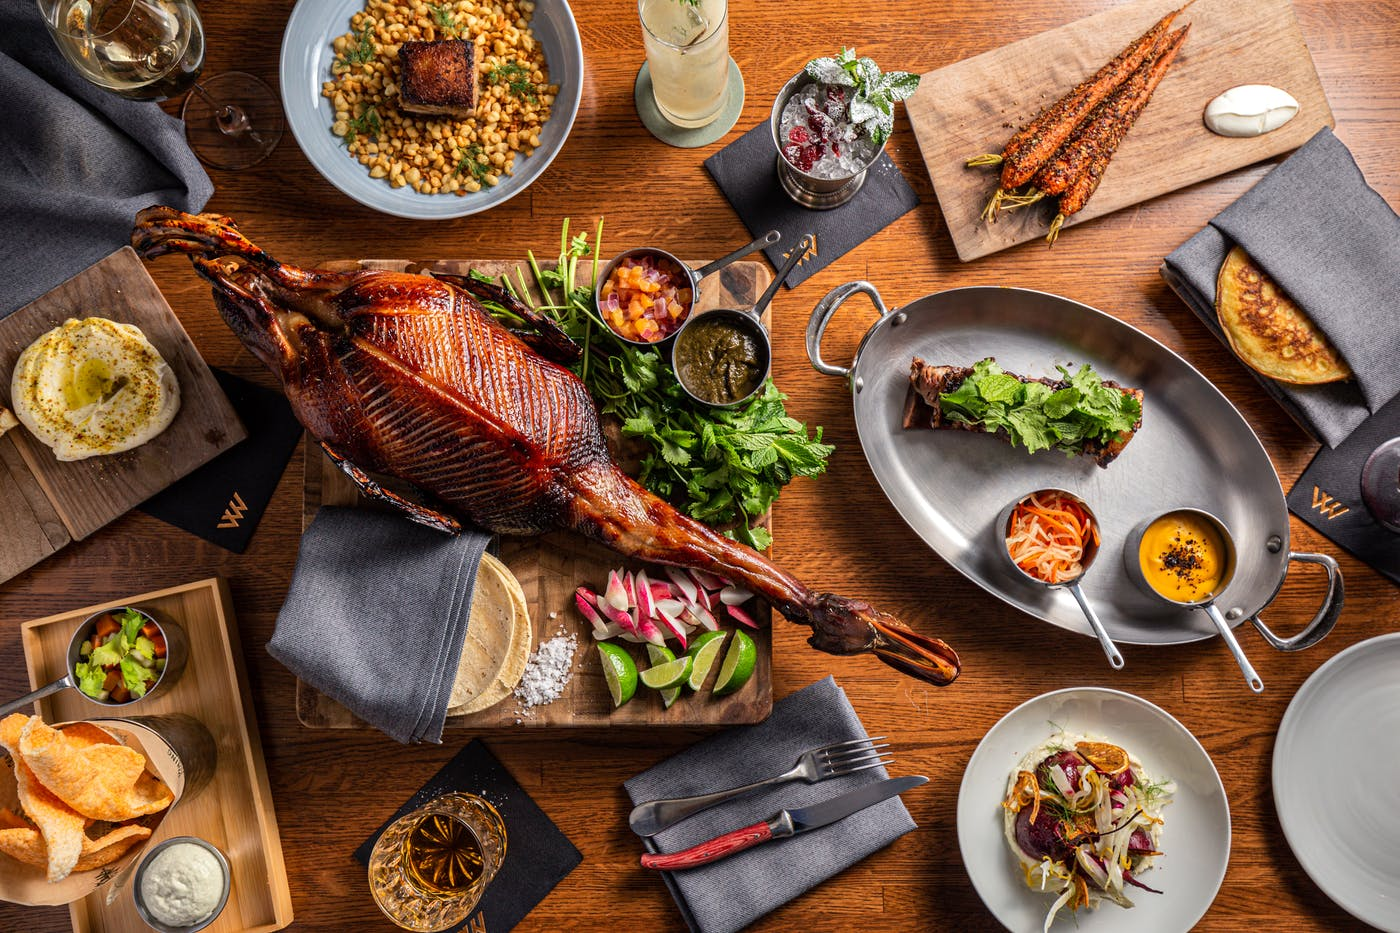 A spread of dishes on a table, including fire-roasted carrots, dry-aged duck, grilled short rib, and chicken chicharrónes.